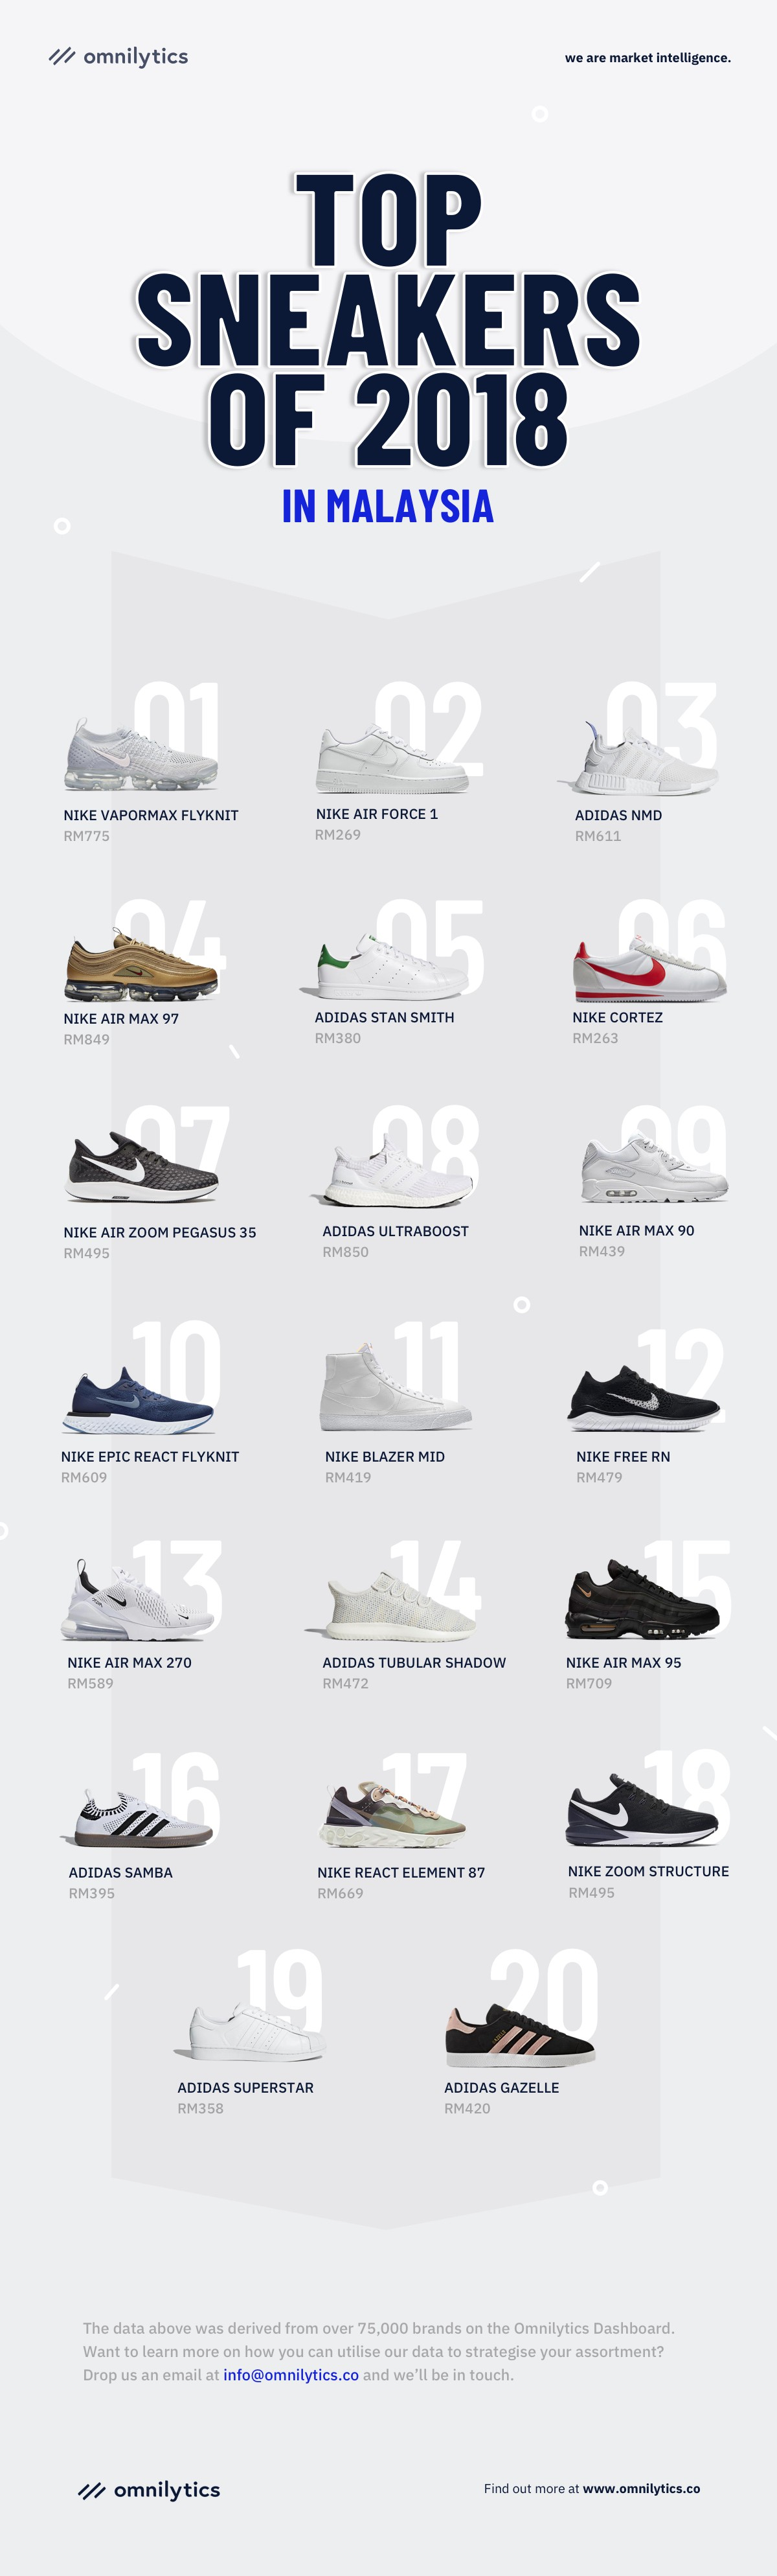 Top Sneakers of 2018 in Malaysia (Infographic